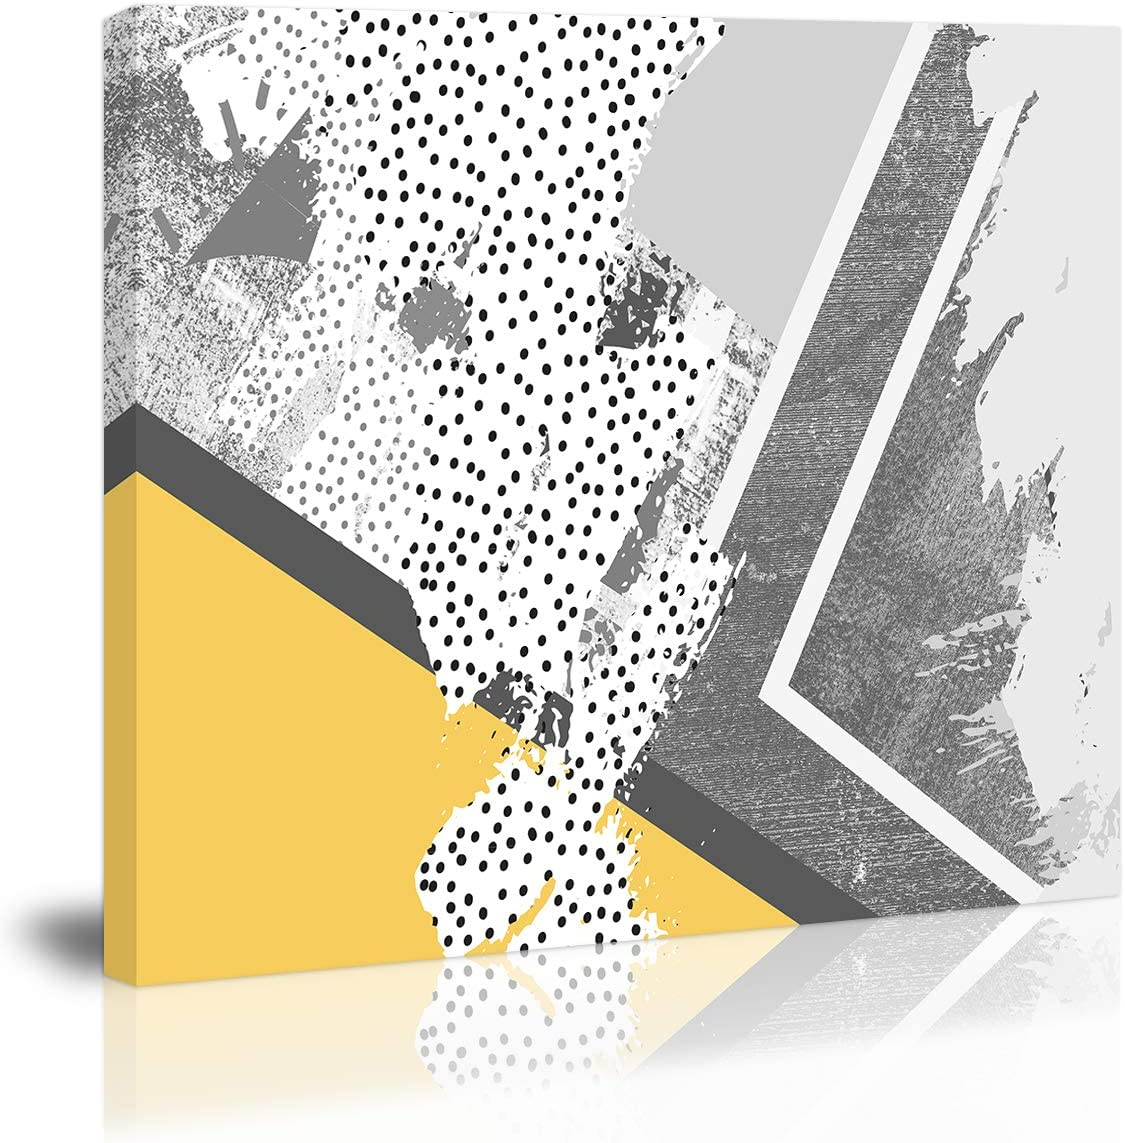 Modern Abstract Wall Art Decor Yellow Gray Modern Artwork Canvas Painting Prints Pictures Home Decor for Living Room Dining Room Bedroom